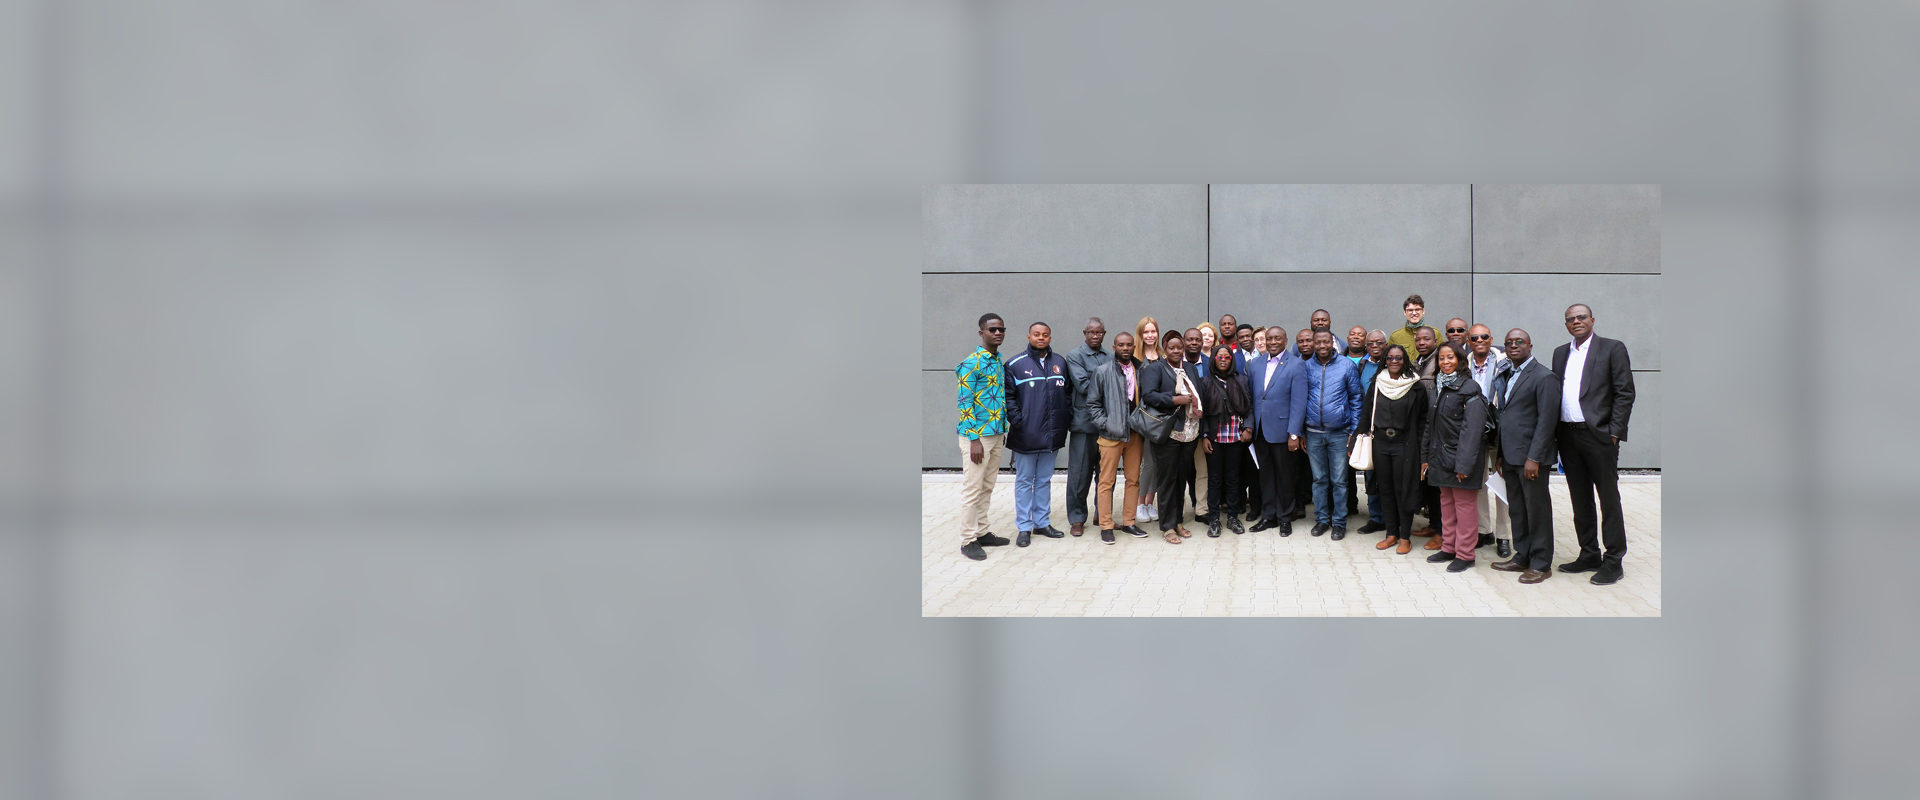 Specialist seminar for construction professionals from Ghana